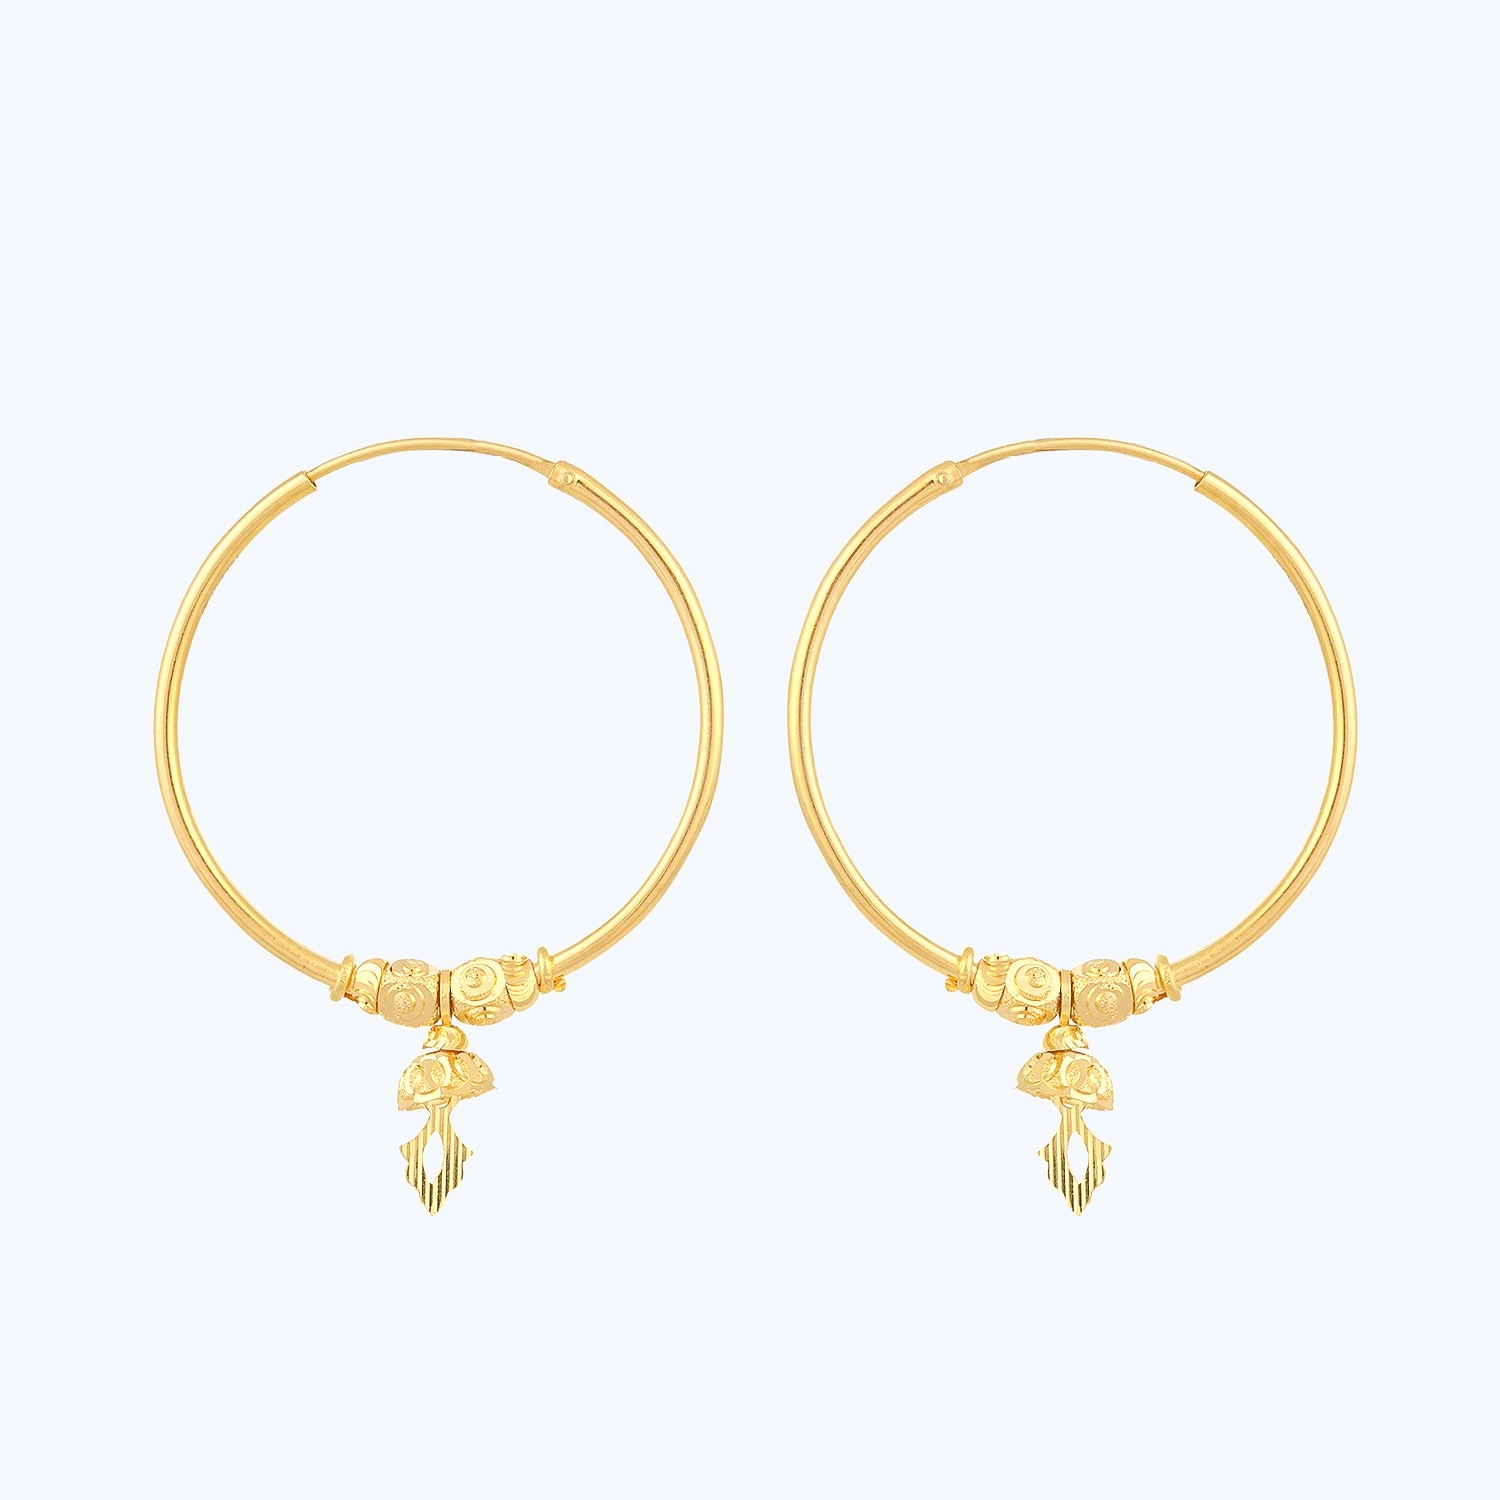 hoop number product creole jewellery d plain white earrings webstore round ernest jones gold